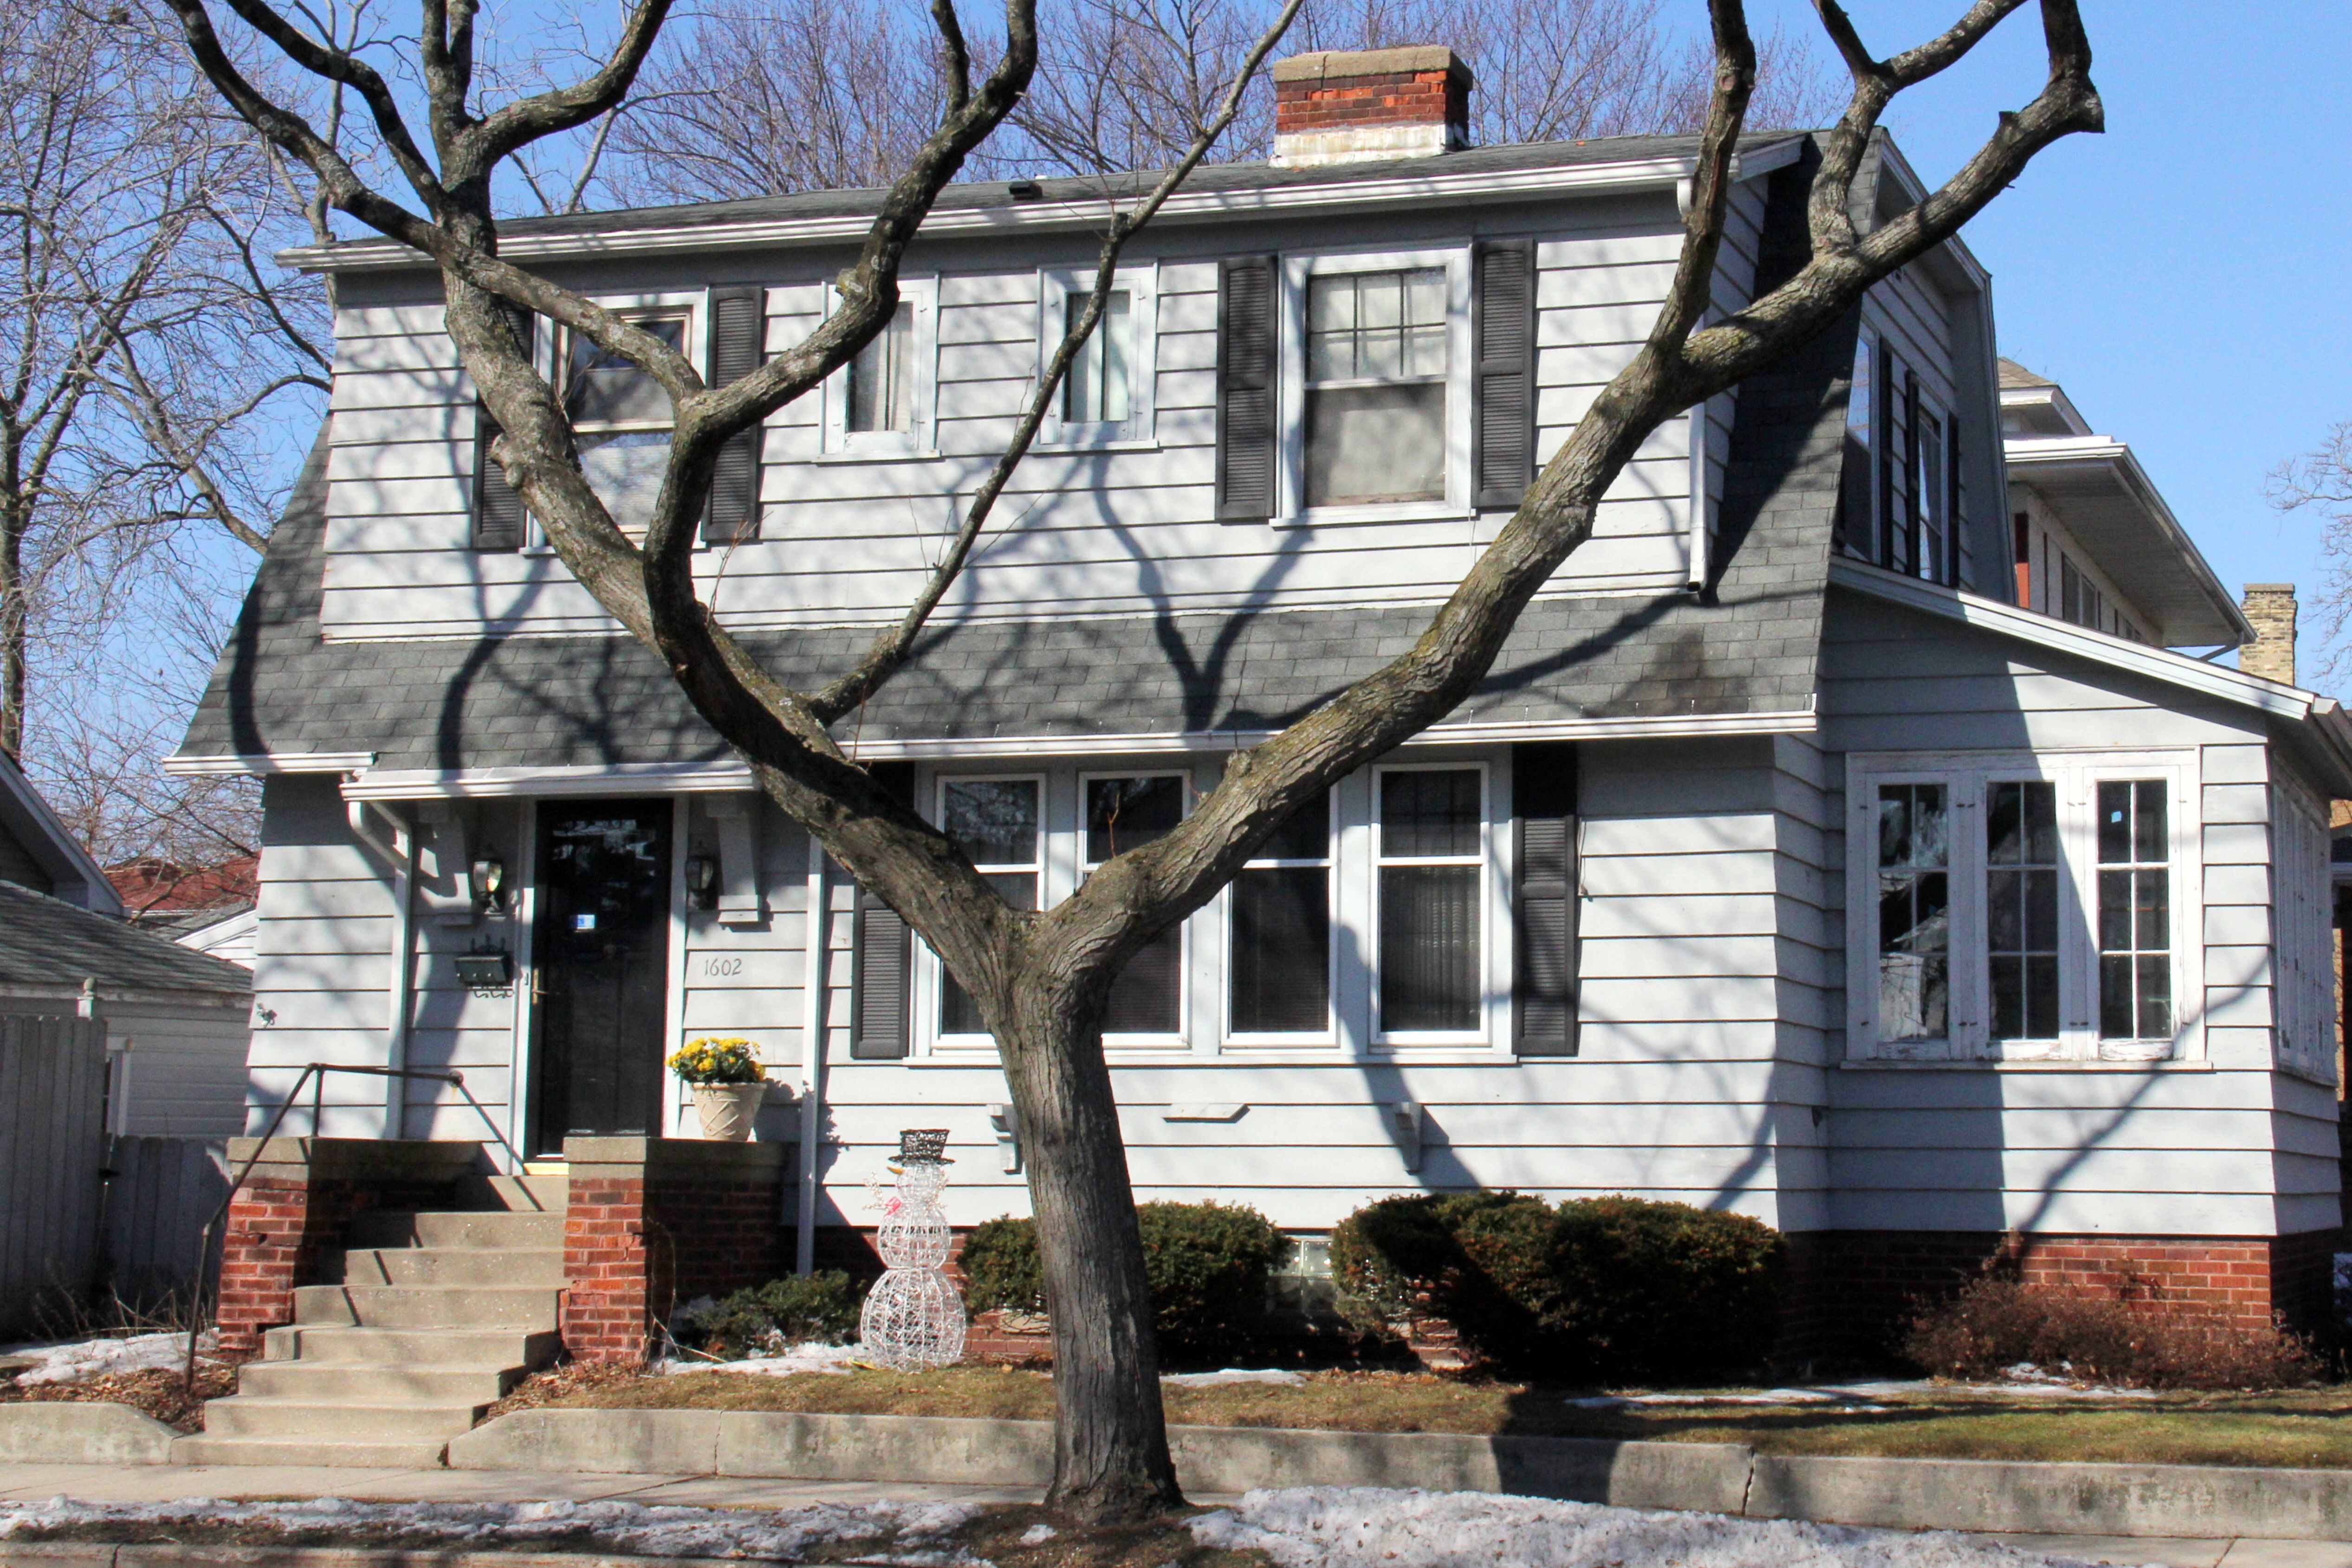 Typical American home with four-window dormer along the length of the roof facade